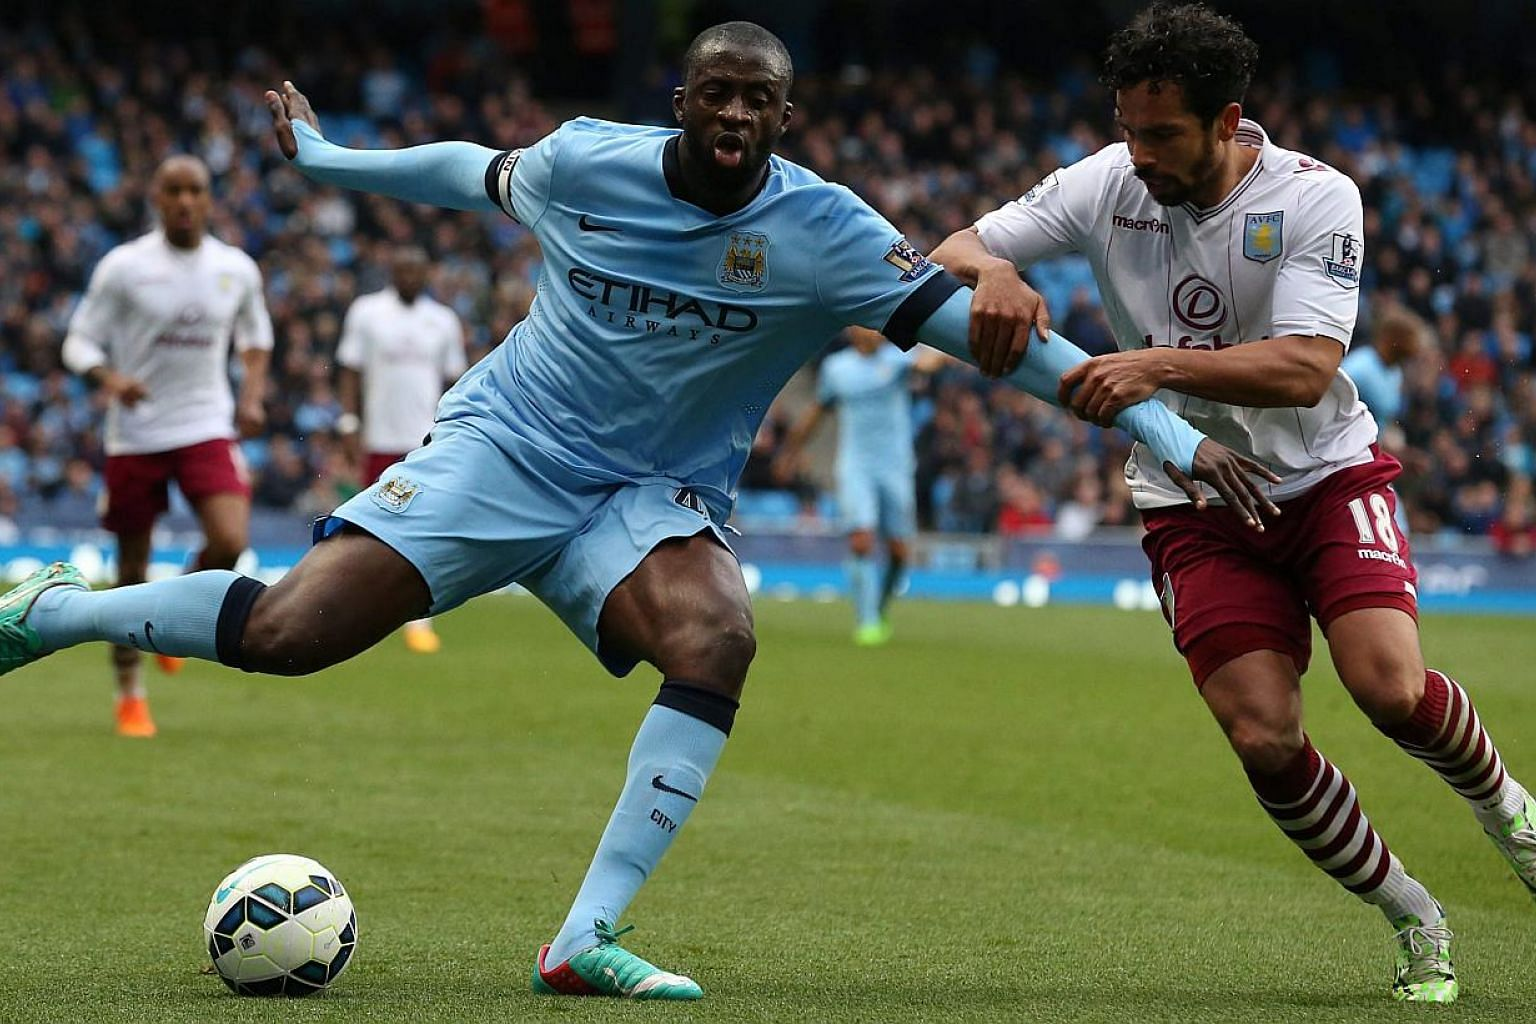 Aston Villa's Kieran Richardson (right) challenges Manchester City's Yaya Toure during the English Premier League soccer match between Manchester City and Aston Villa at the Etihad stadium in Manchester, Britain, April 25, 2015. -- PHOTO: EPA